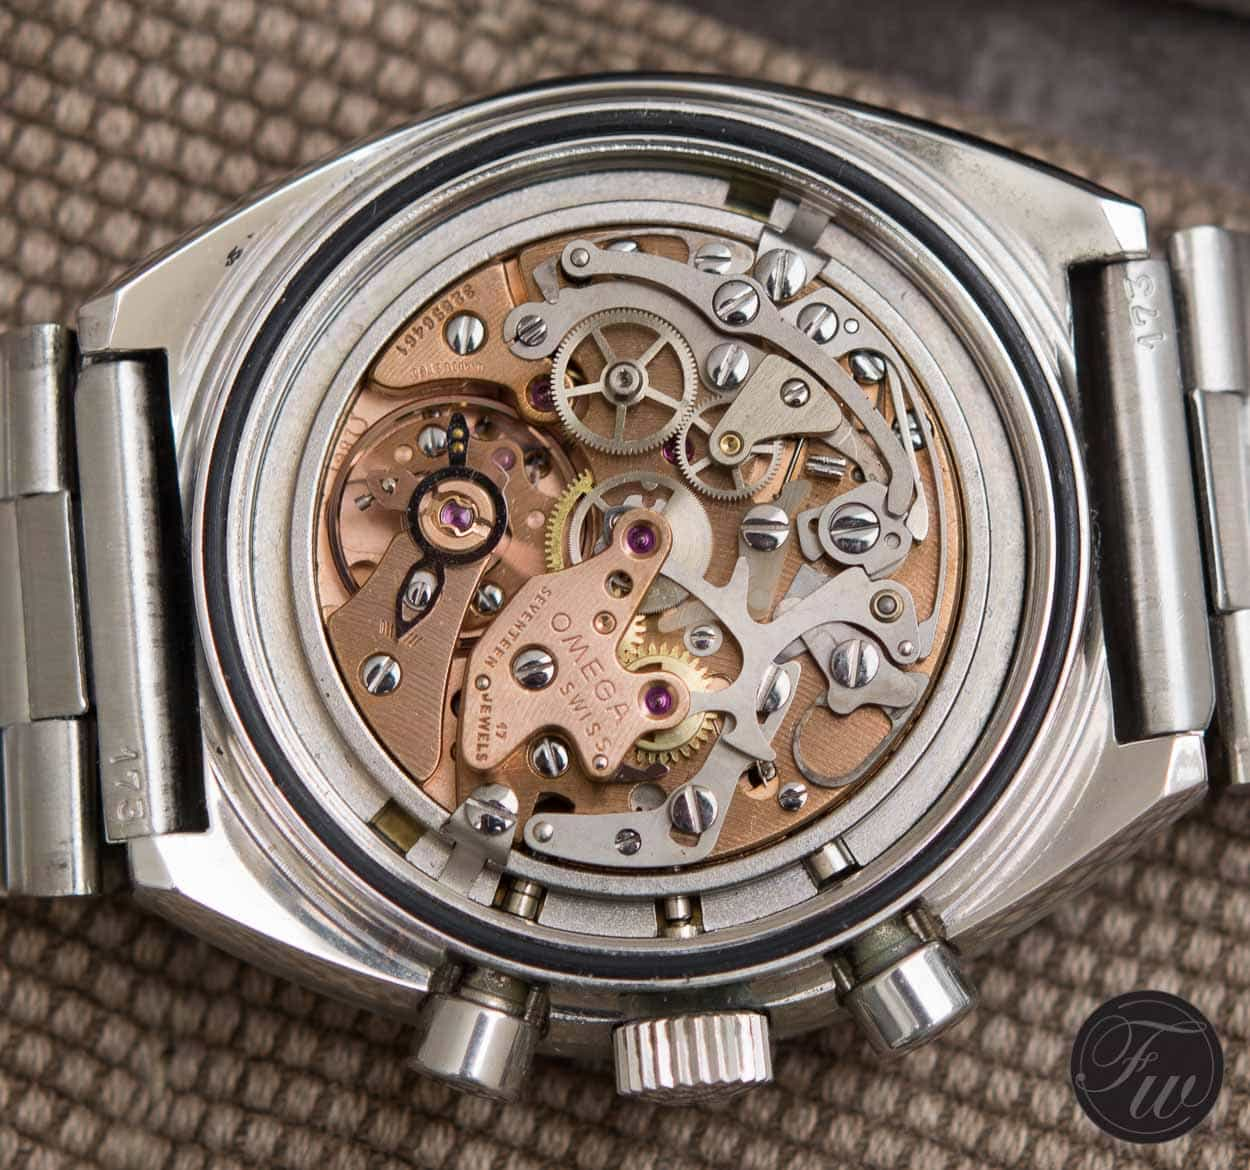 Omega Speedmaster Mark II 145.014 movement caliber 861